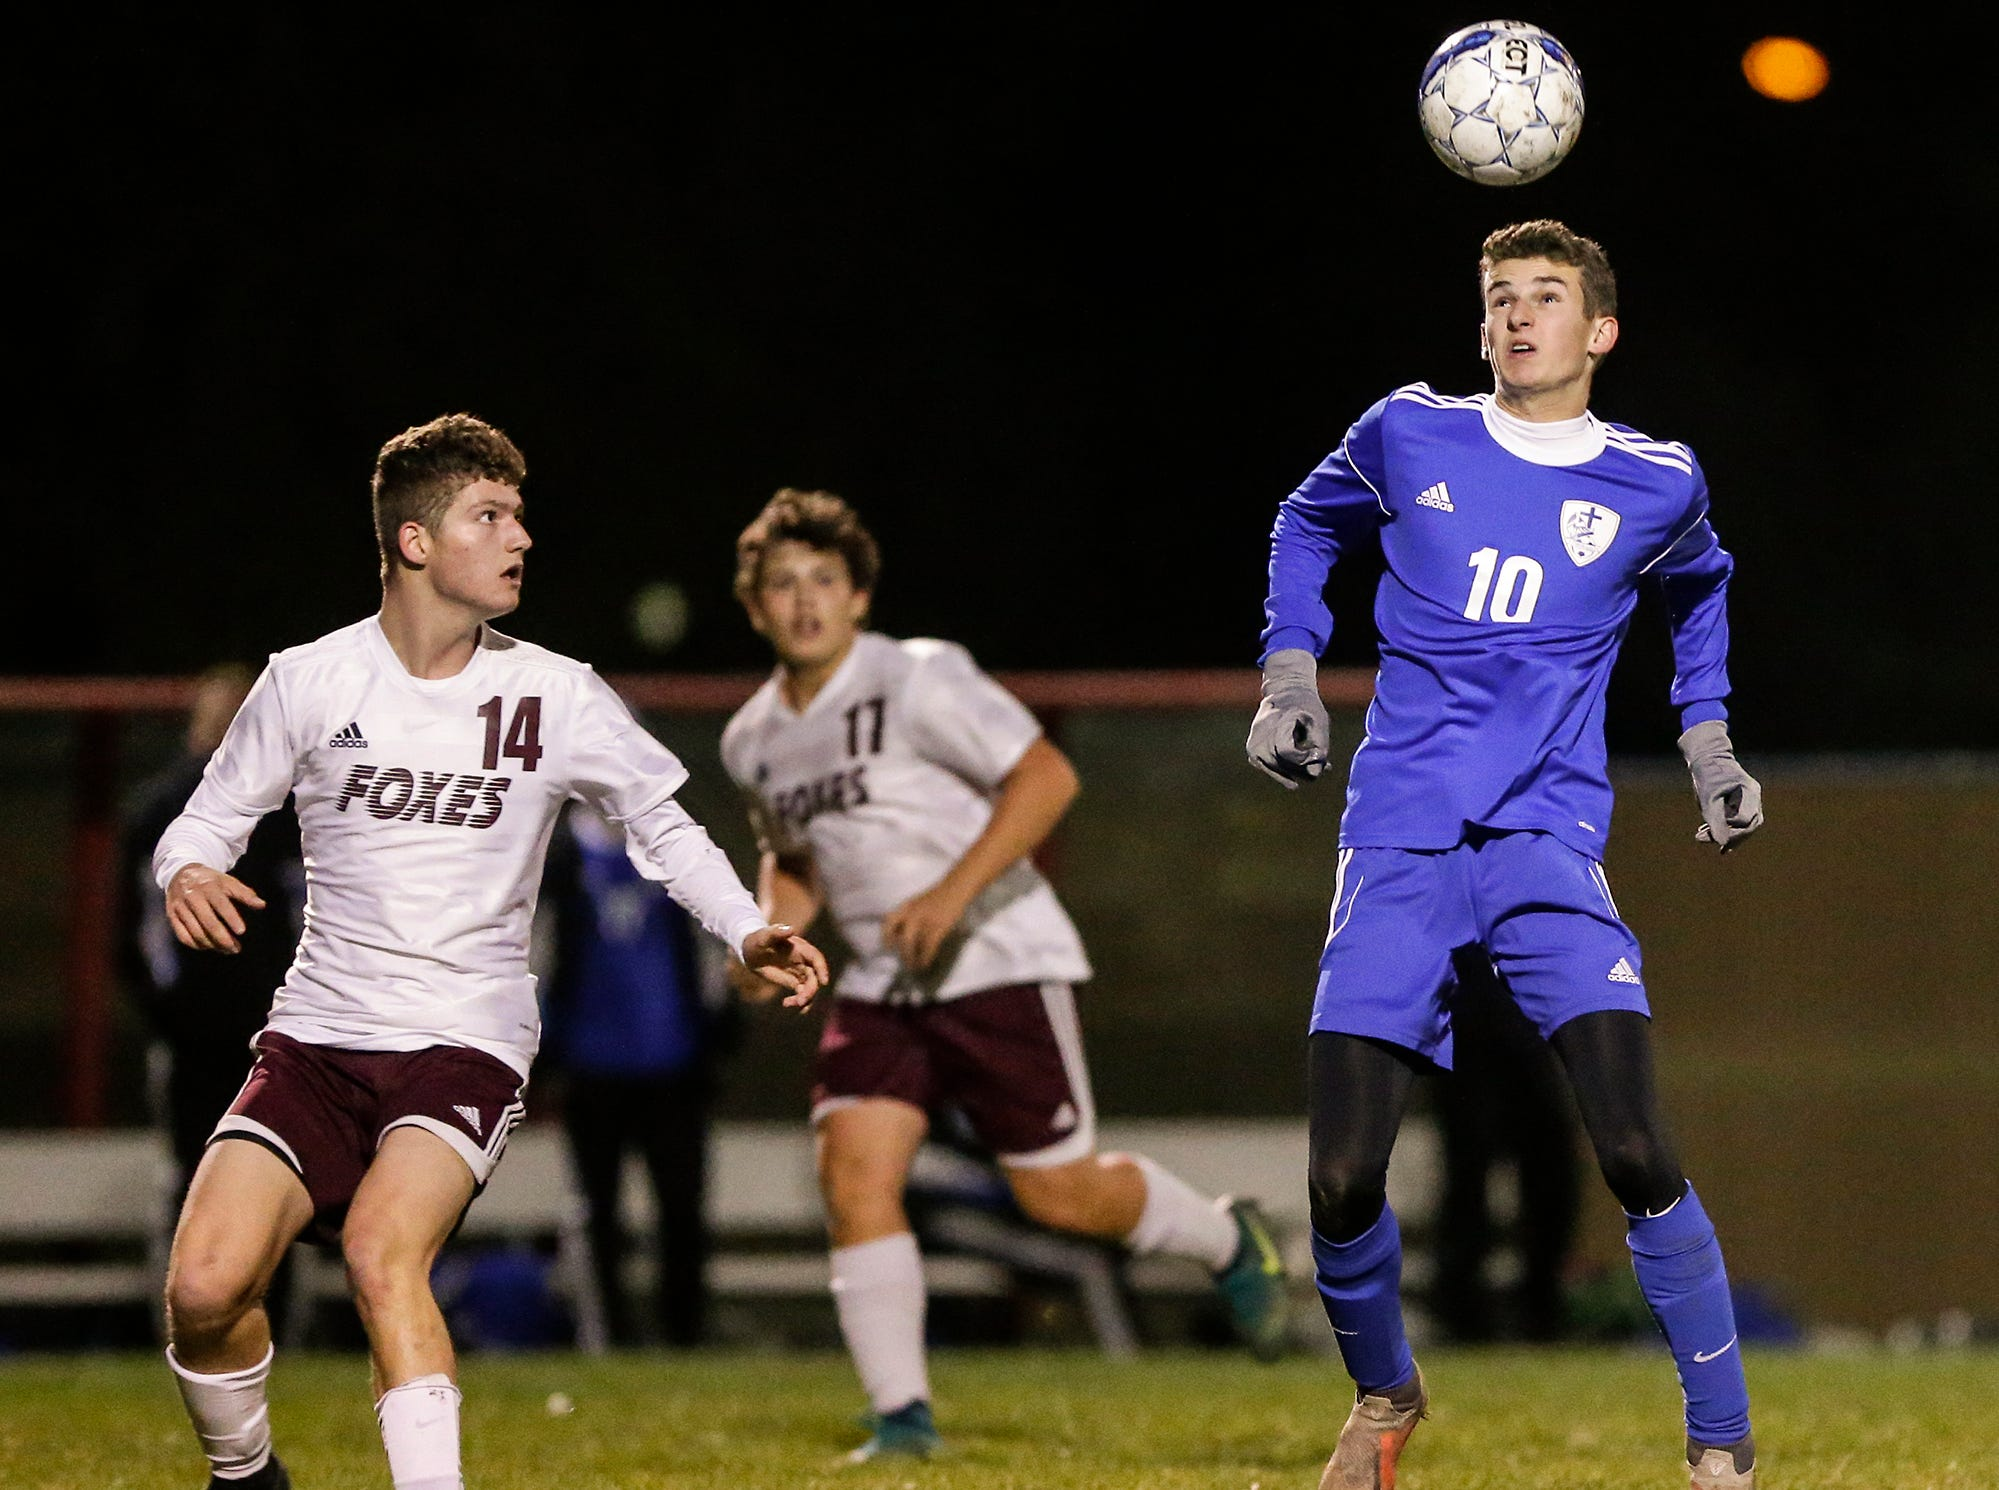 Winnebago Lutheran Academy soccer's Nathan Schmidt bumps the ball with his head against Omro High School during their WIAA regional playoff game Thursday, October 18, 2018 in Fond du Lac, Wisconsin. Doug Raflik/USA TODAY NETWORK-Wisconsin